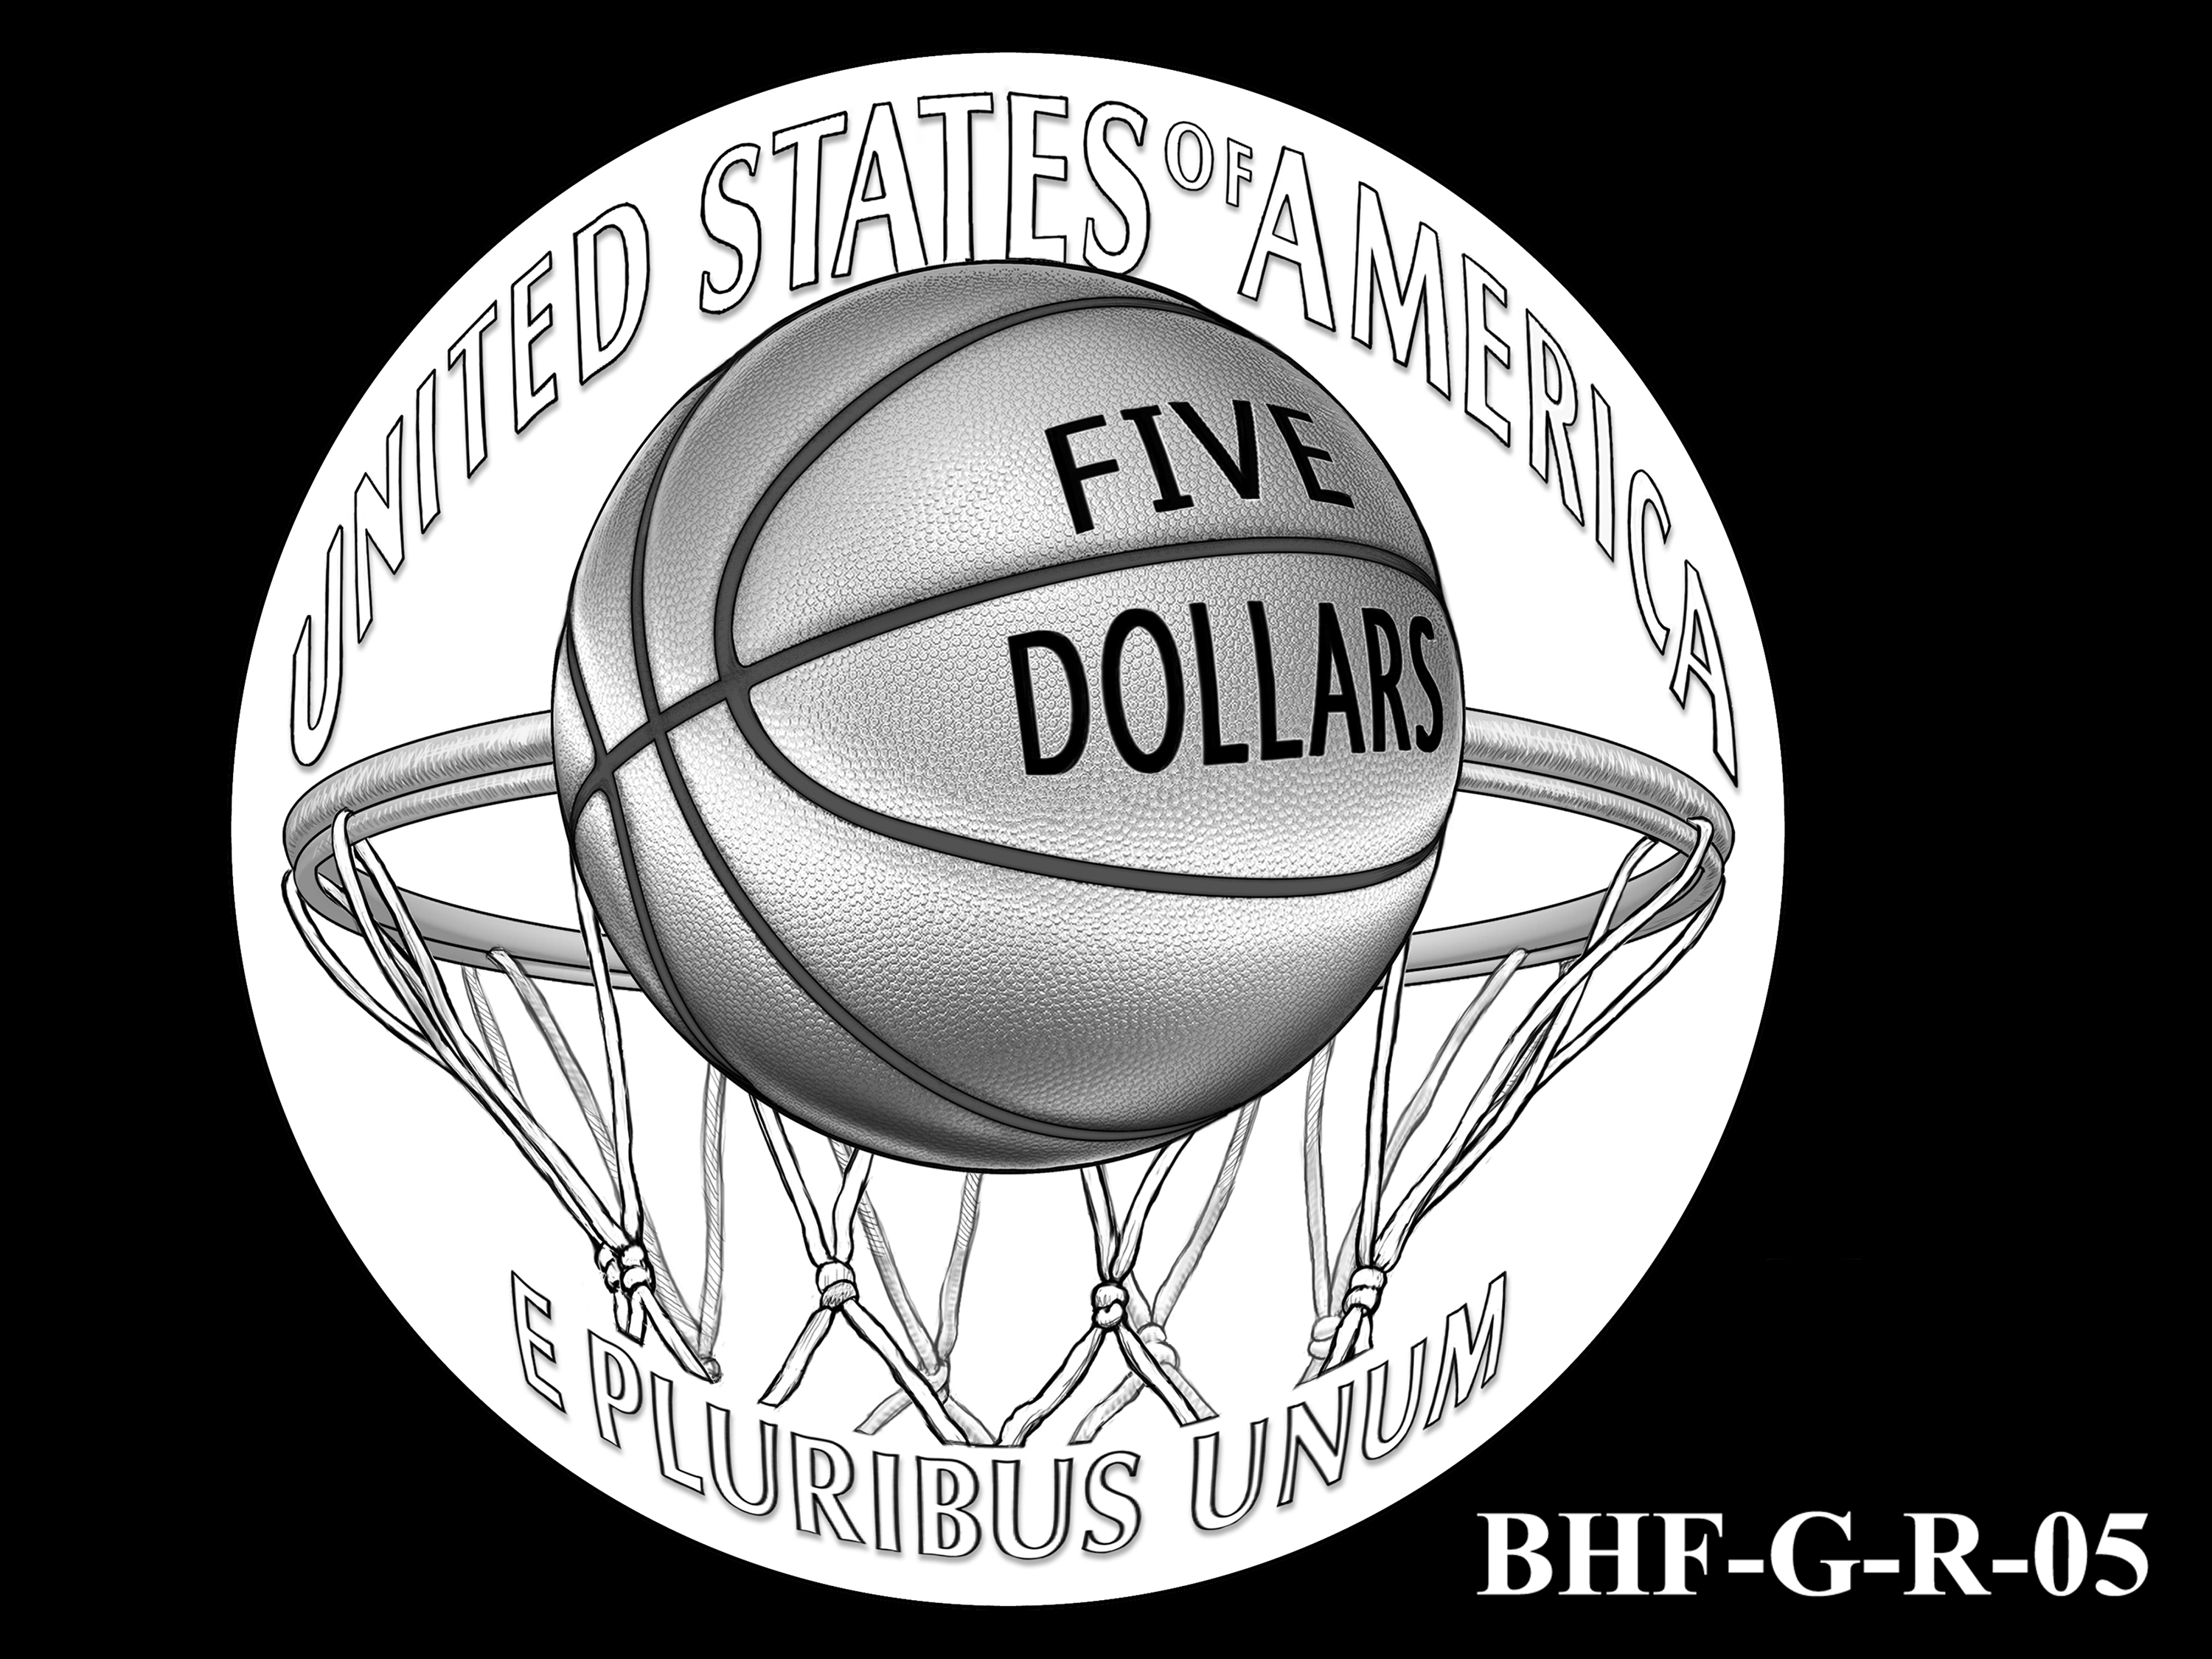 BHF-G-R-05 -- 2020 Basketball Hall of Fame Commemorative Coin Program - Gold Reverse